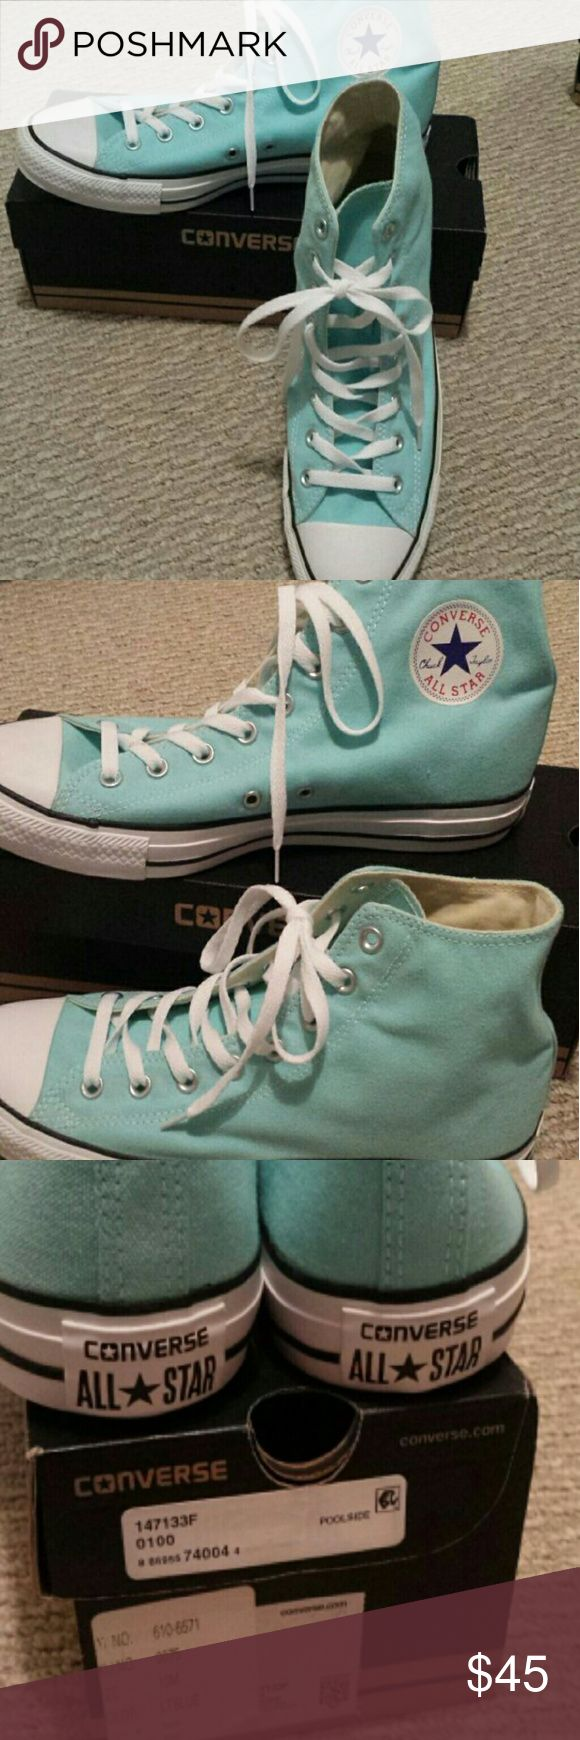 Nwt Converse size 12 Brand new with the tag and box Size 10 for men's size 12 for women High top sneakers Color is light blue or turquoise Converse Shoes Sneakers